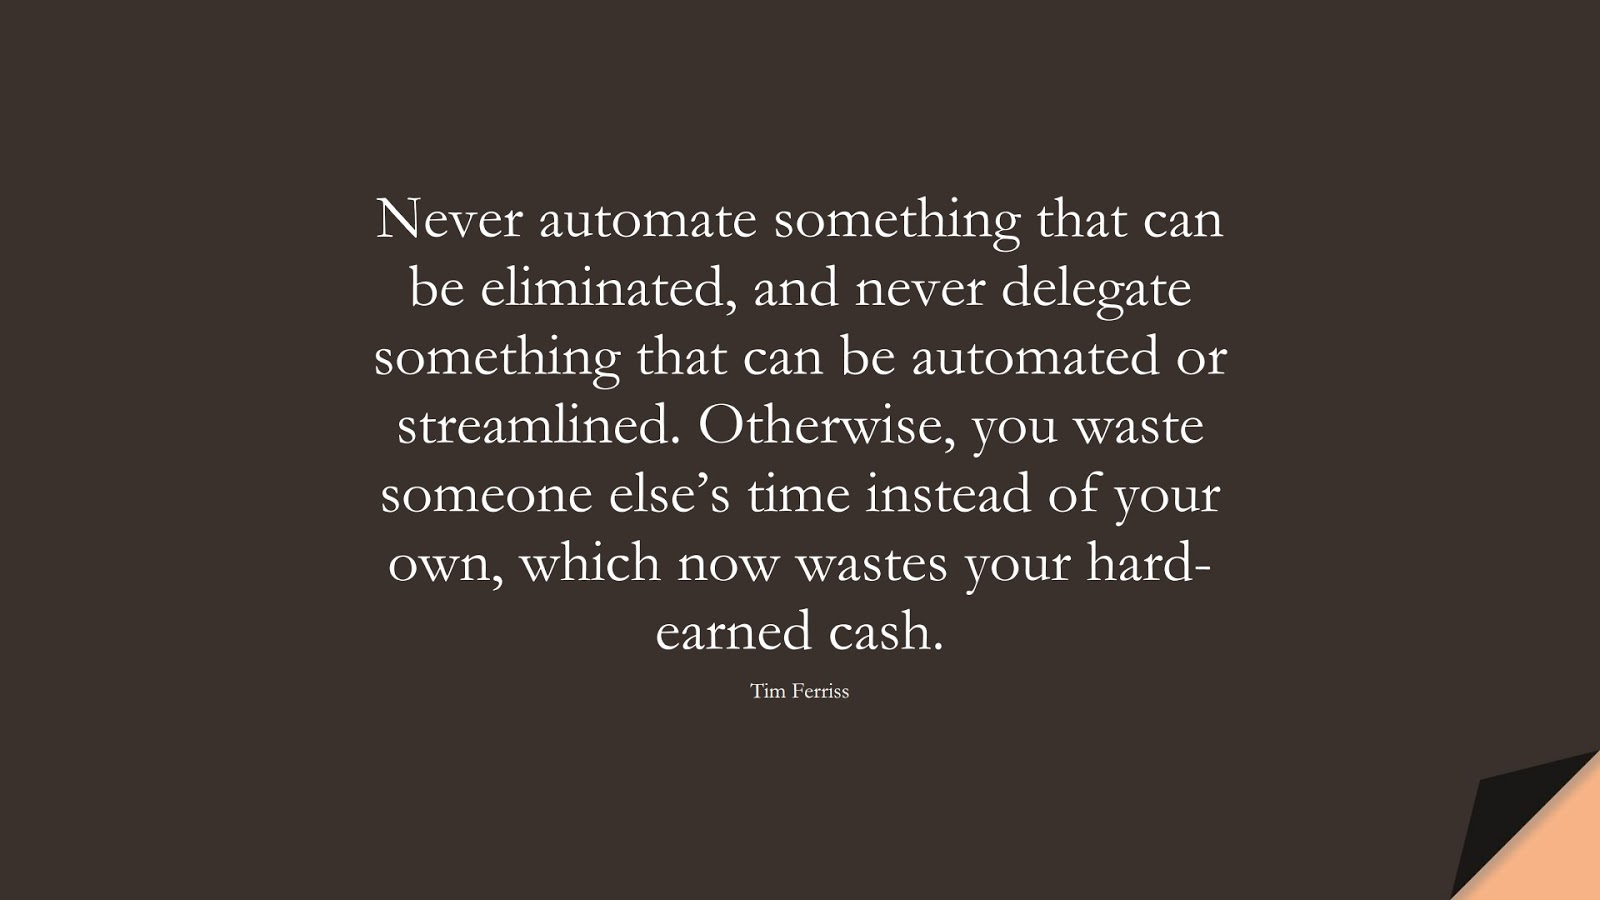 Never automate something that can be eliminated, and never delegate something that can be automated or streamlined. Otherwise, you waste someone else's time instead of your own, which now wastes your hard-earned cash. (Tim Ferriss);  #TimFerrissQuotes